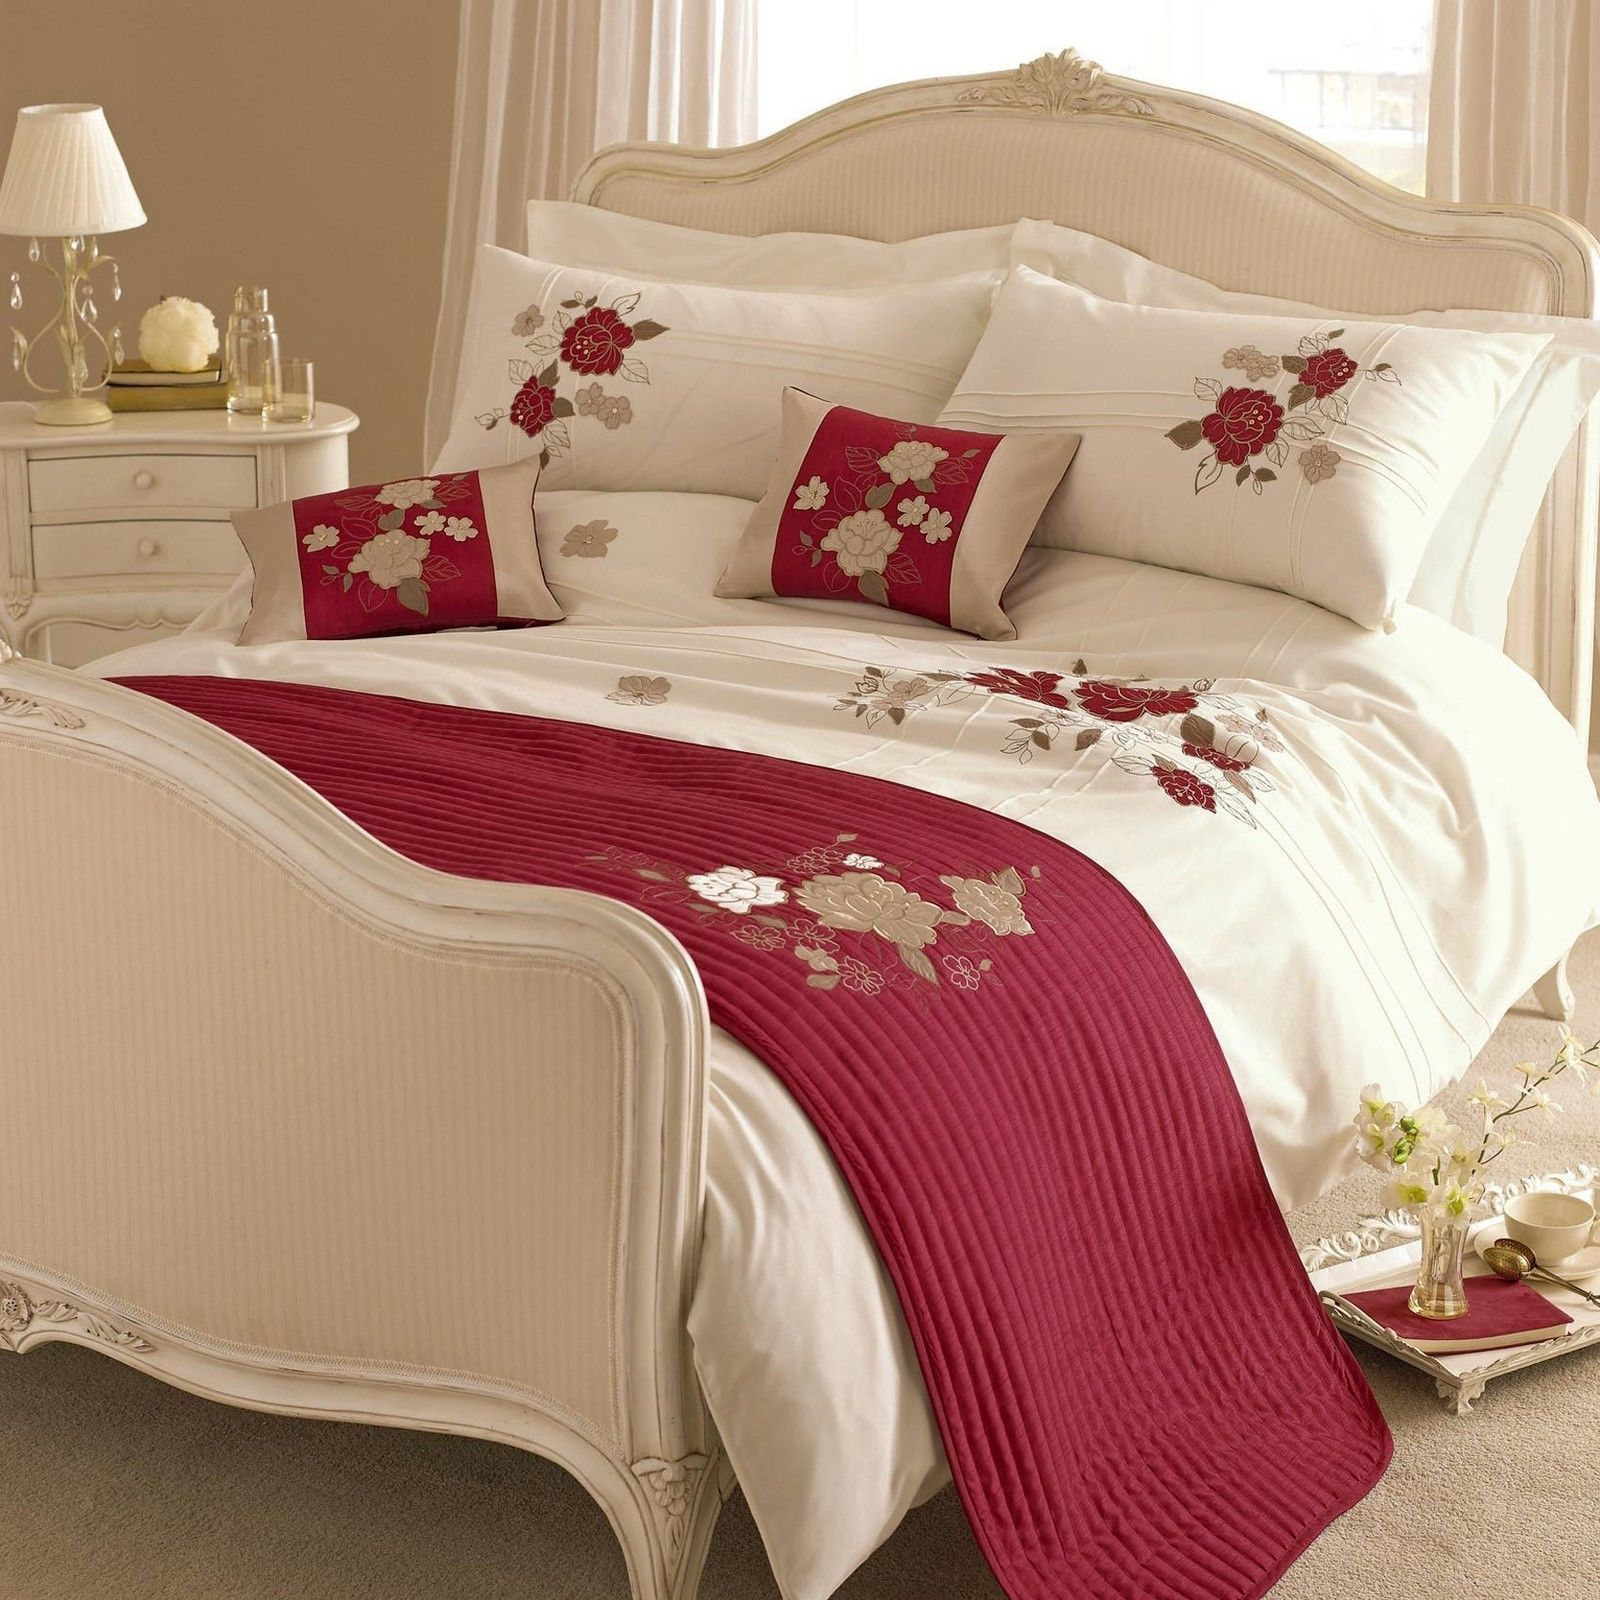 Details About Cream Red Gold Embroidered Floral Bedding Set Duvet